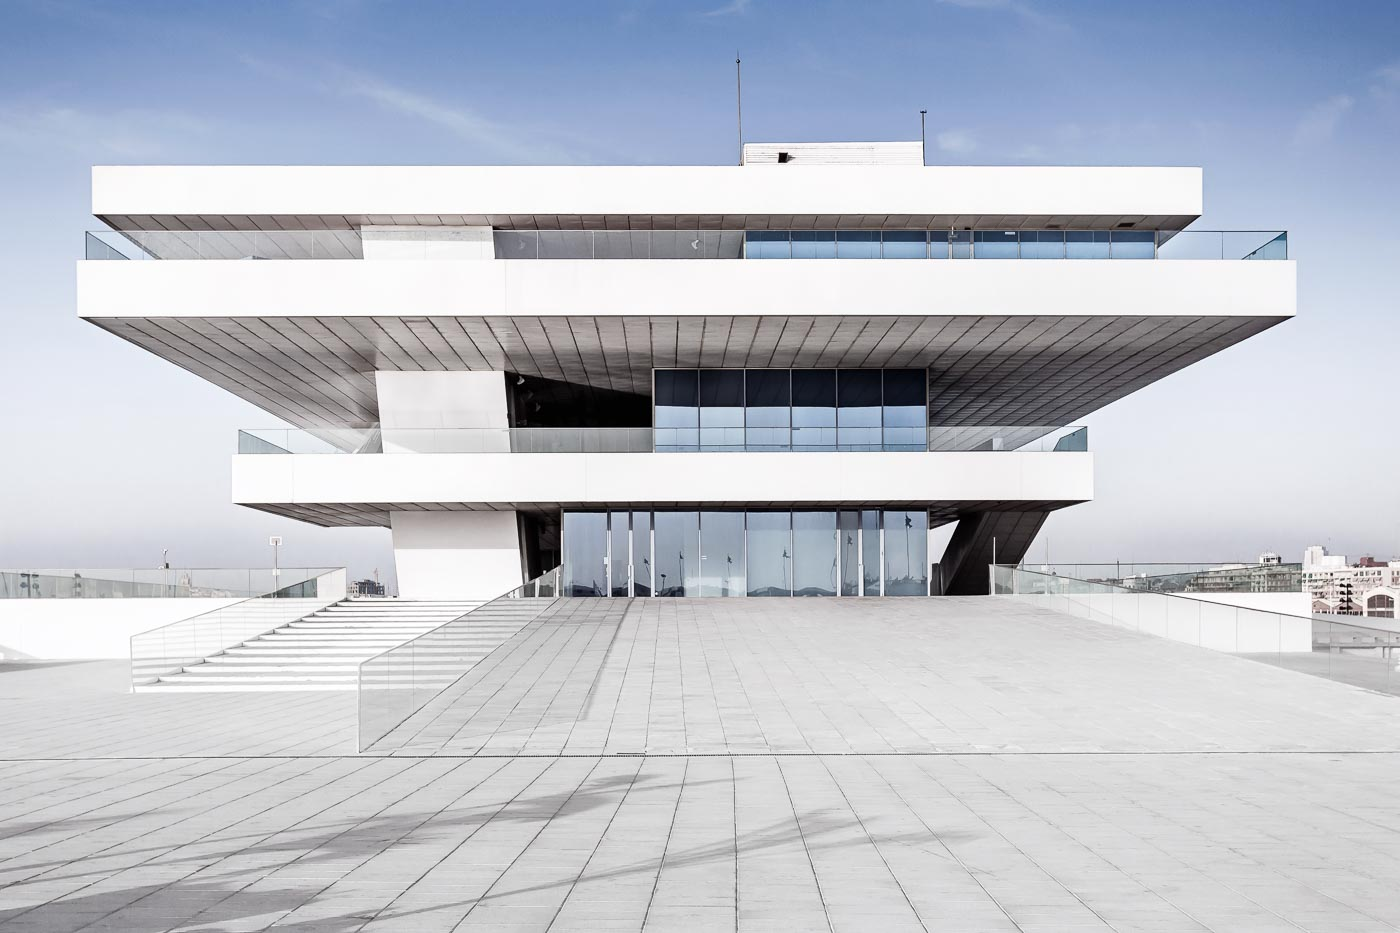 Veles e Vents in Valencia, Spain by David Chipperfield Architects